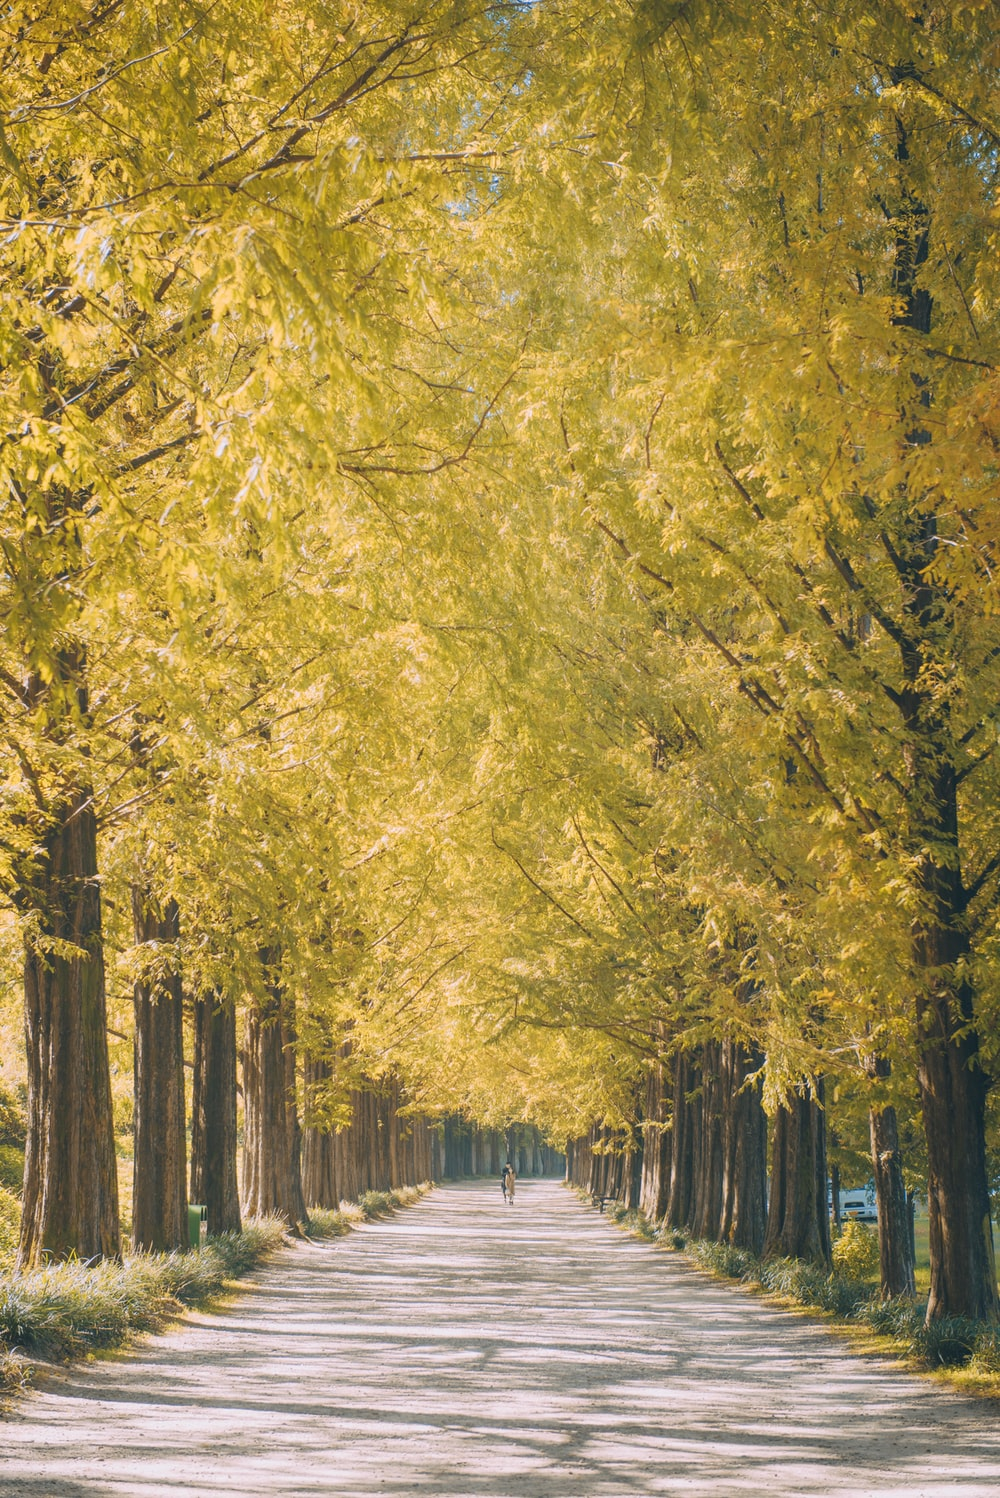 pathway in middle of yellow petaled trees